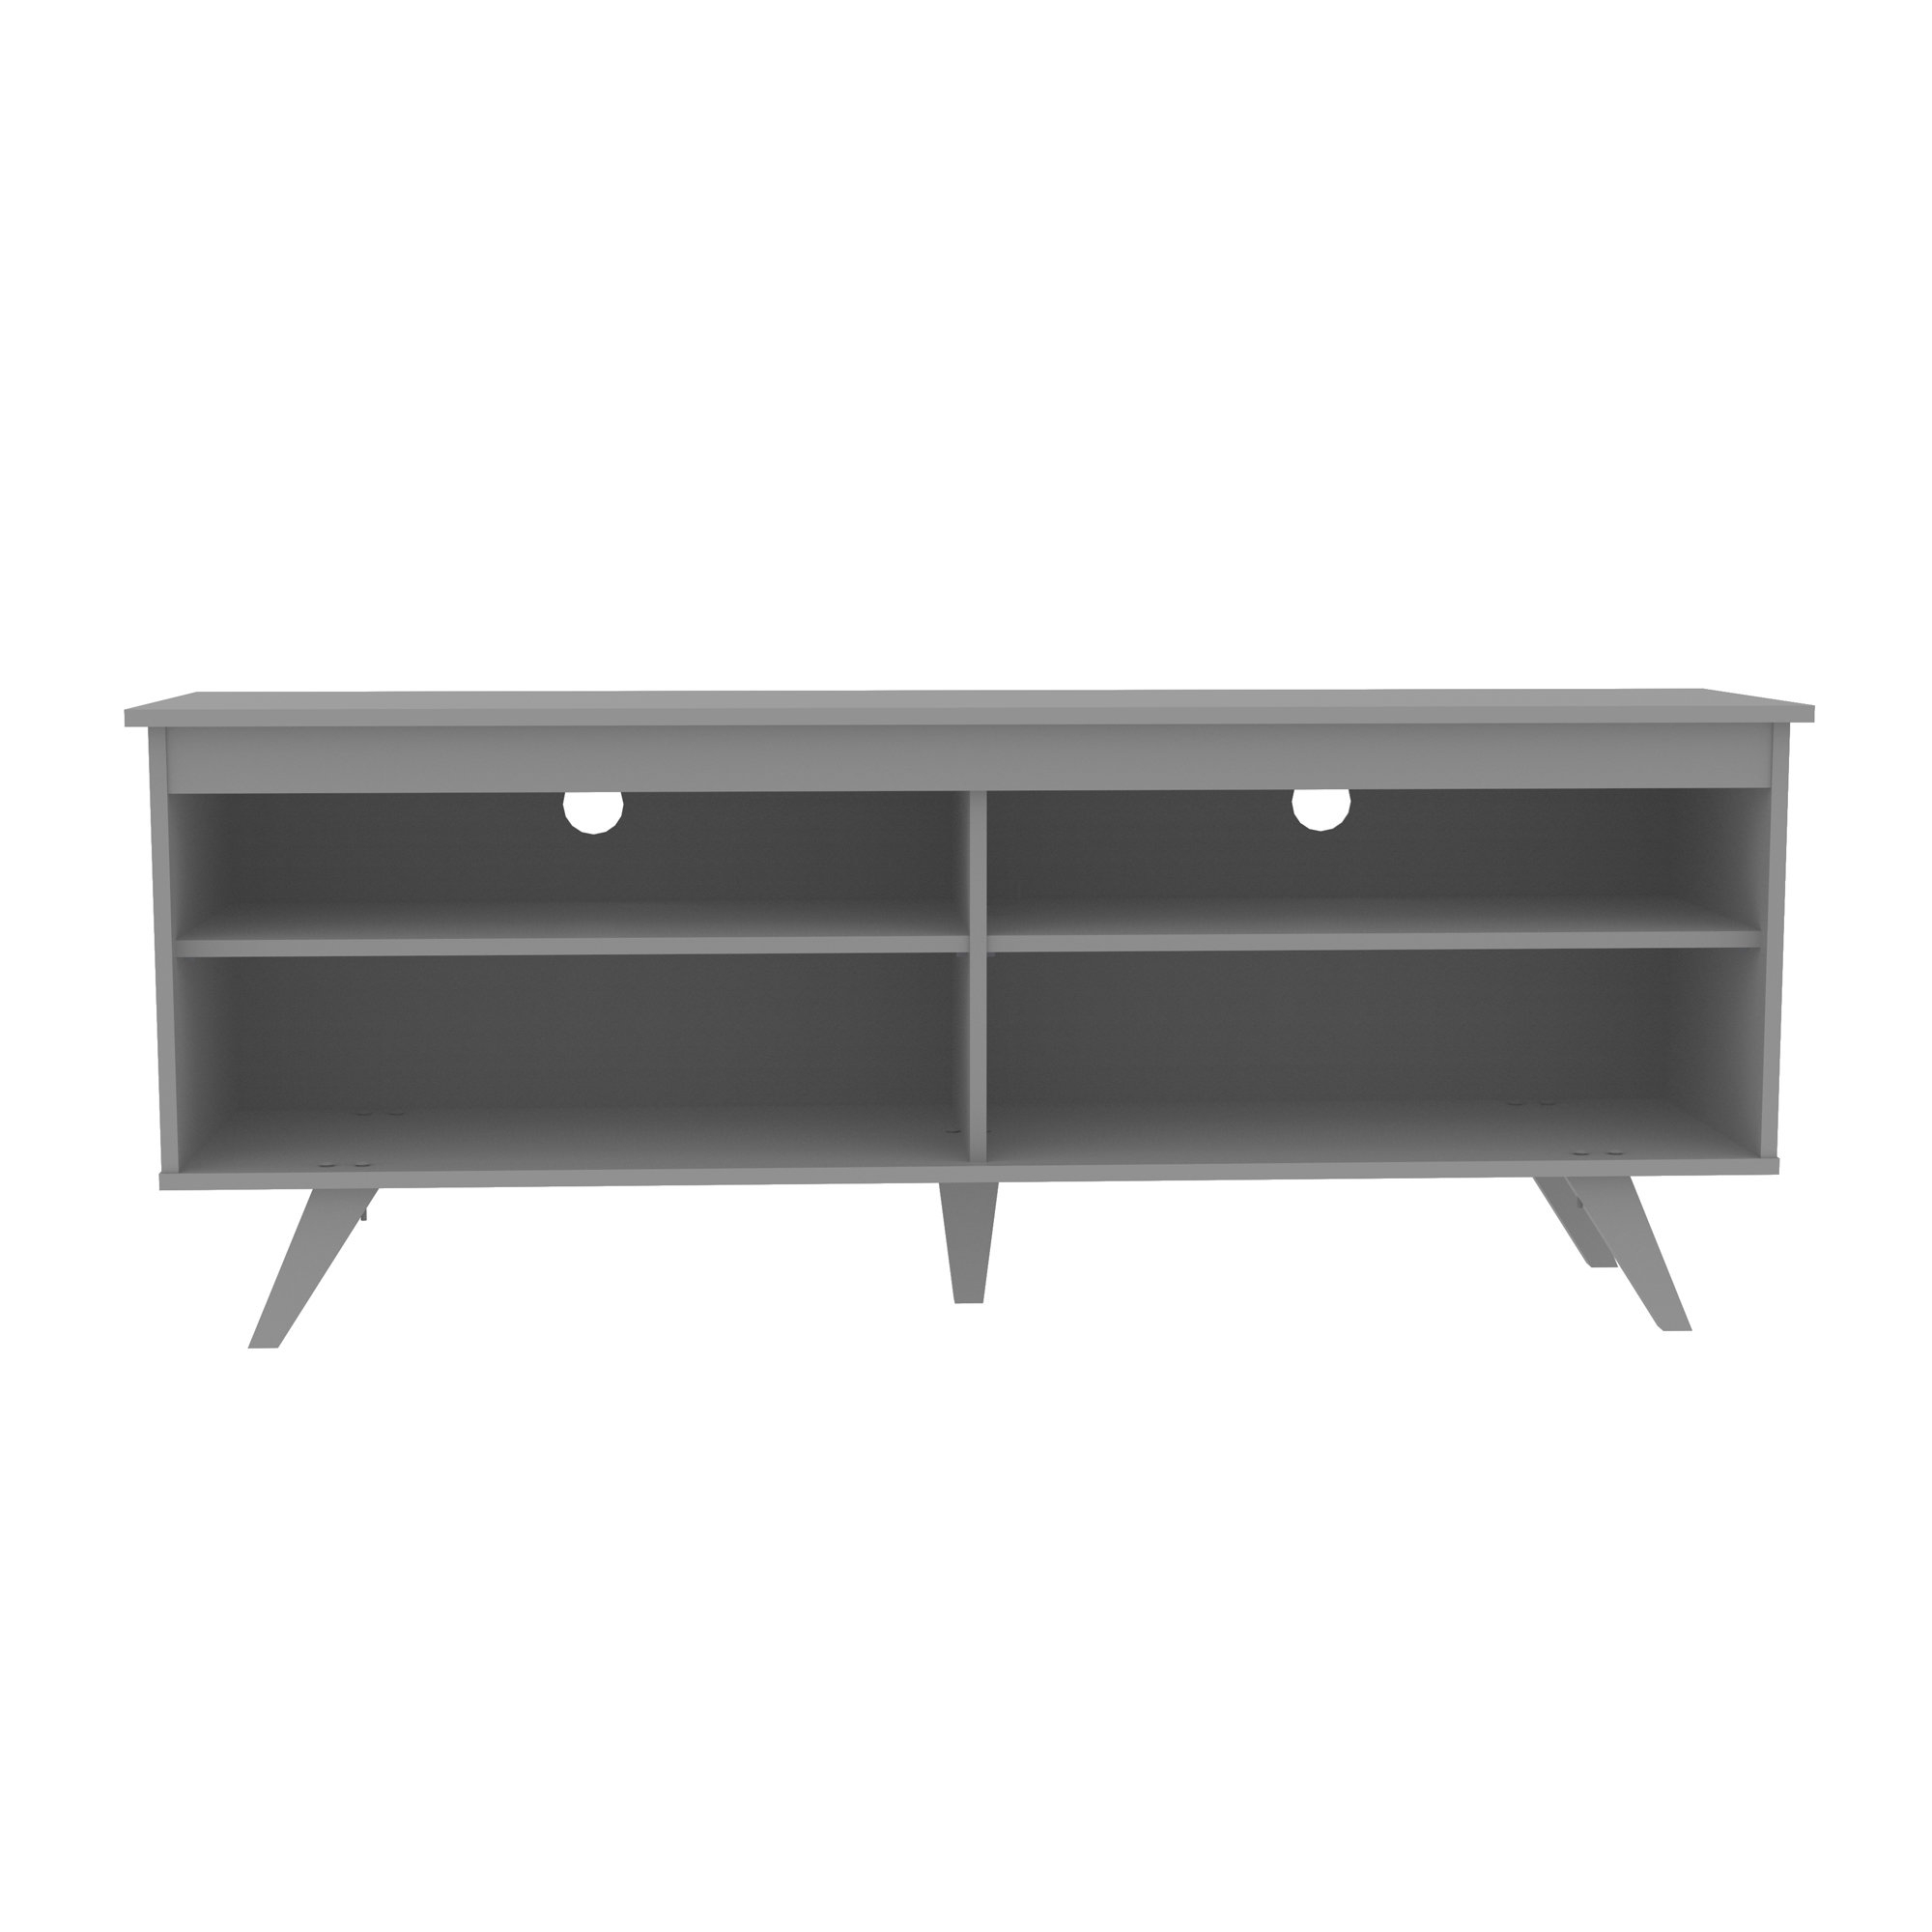 Modern Grey Tv Stands   Allmodern Within Sinclair Blue 54 Inch Tv Stands (View 17 of 30)